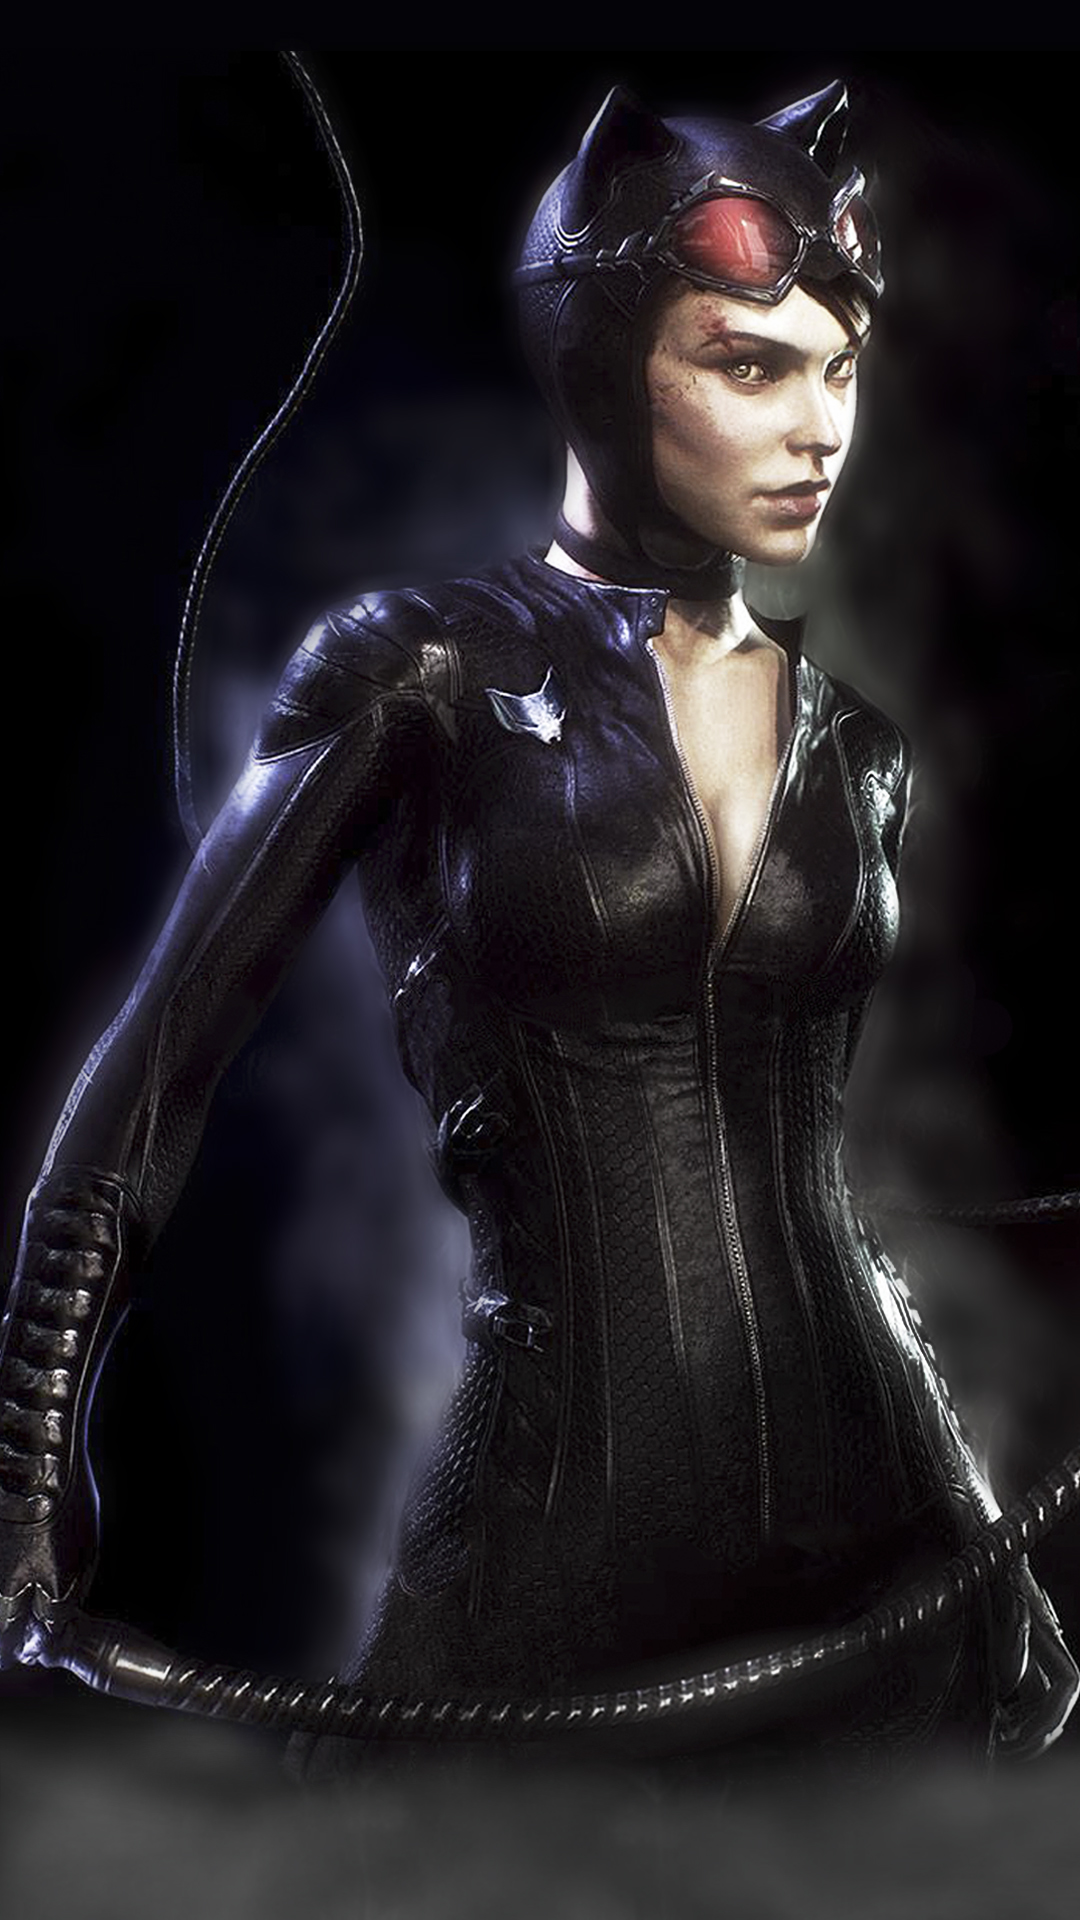 CATWOMAN ARKHAM KNIGHT By JPGraphic